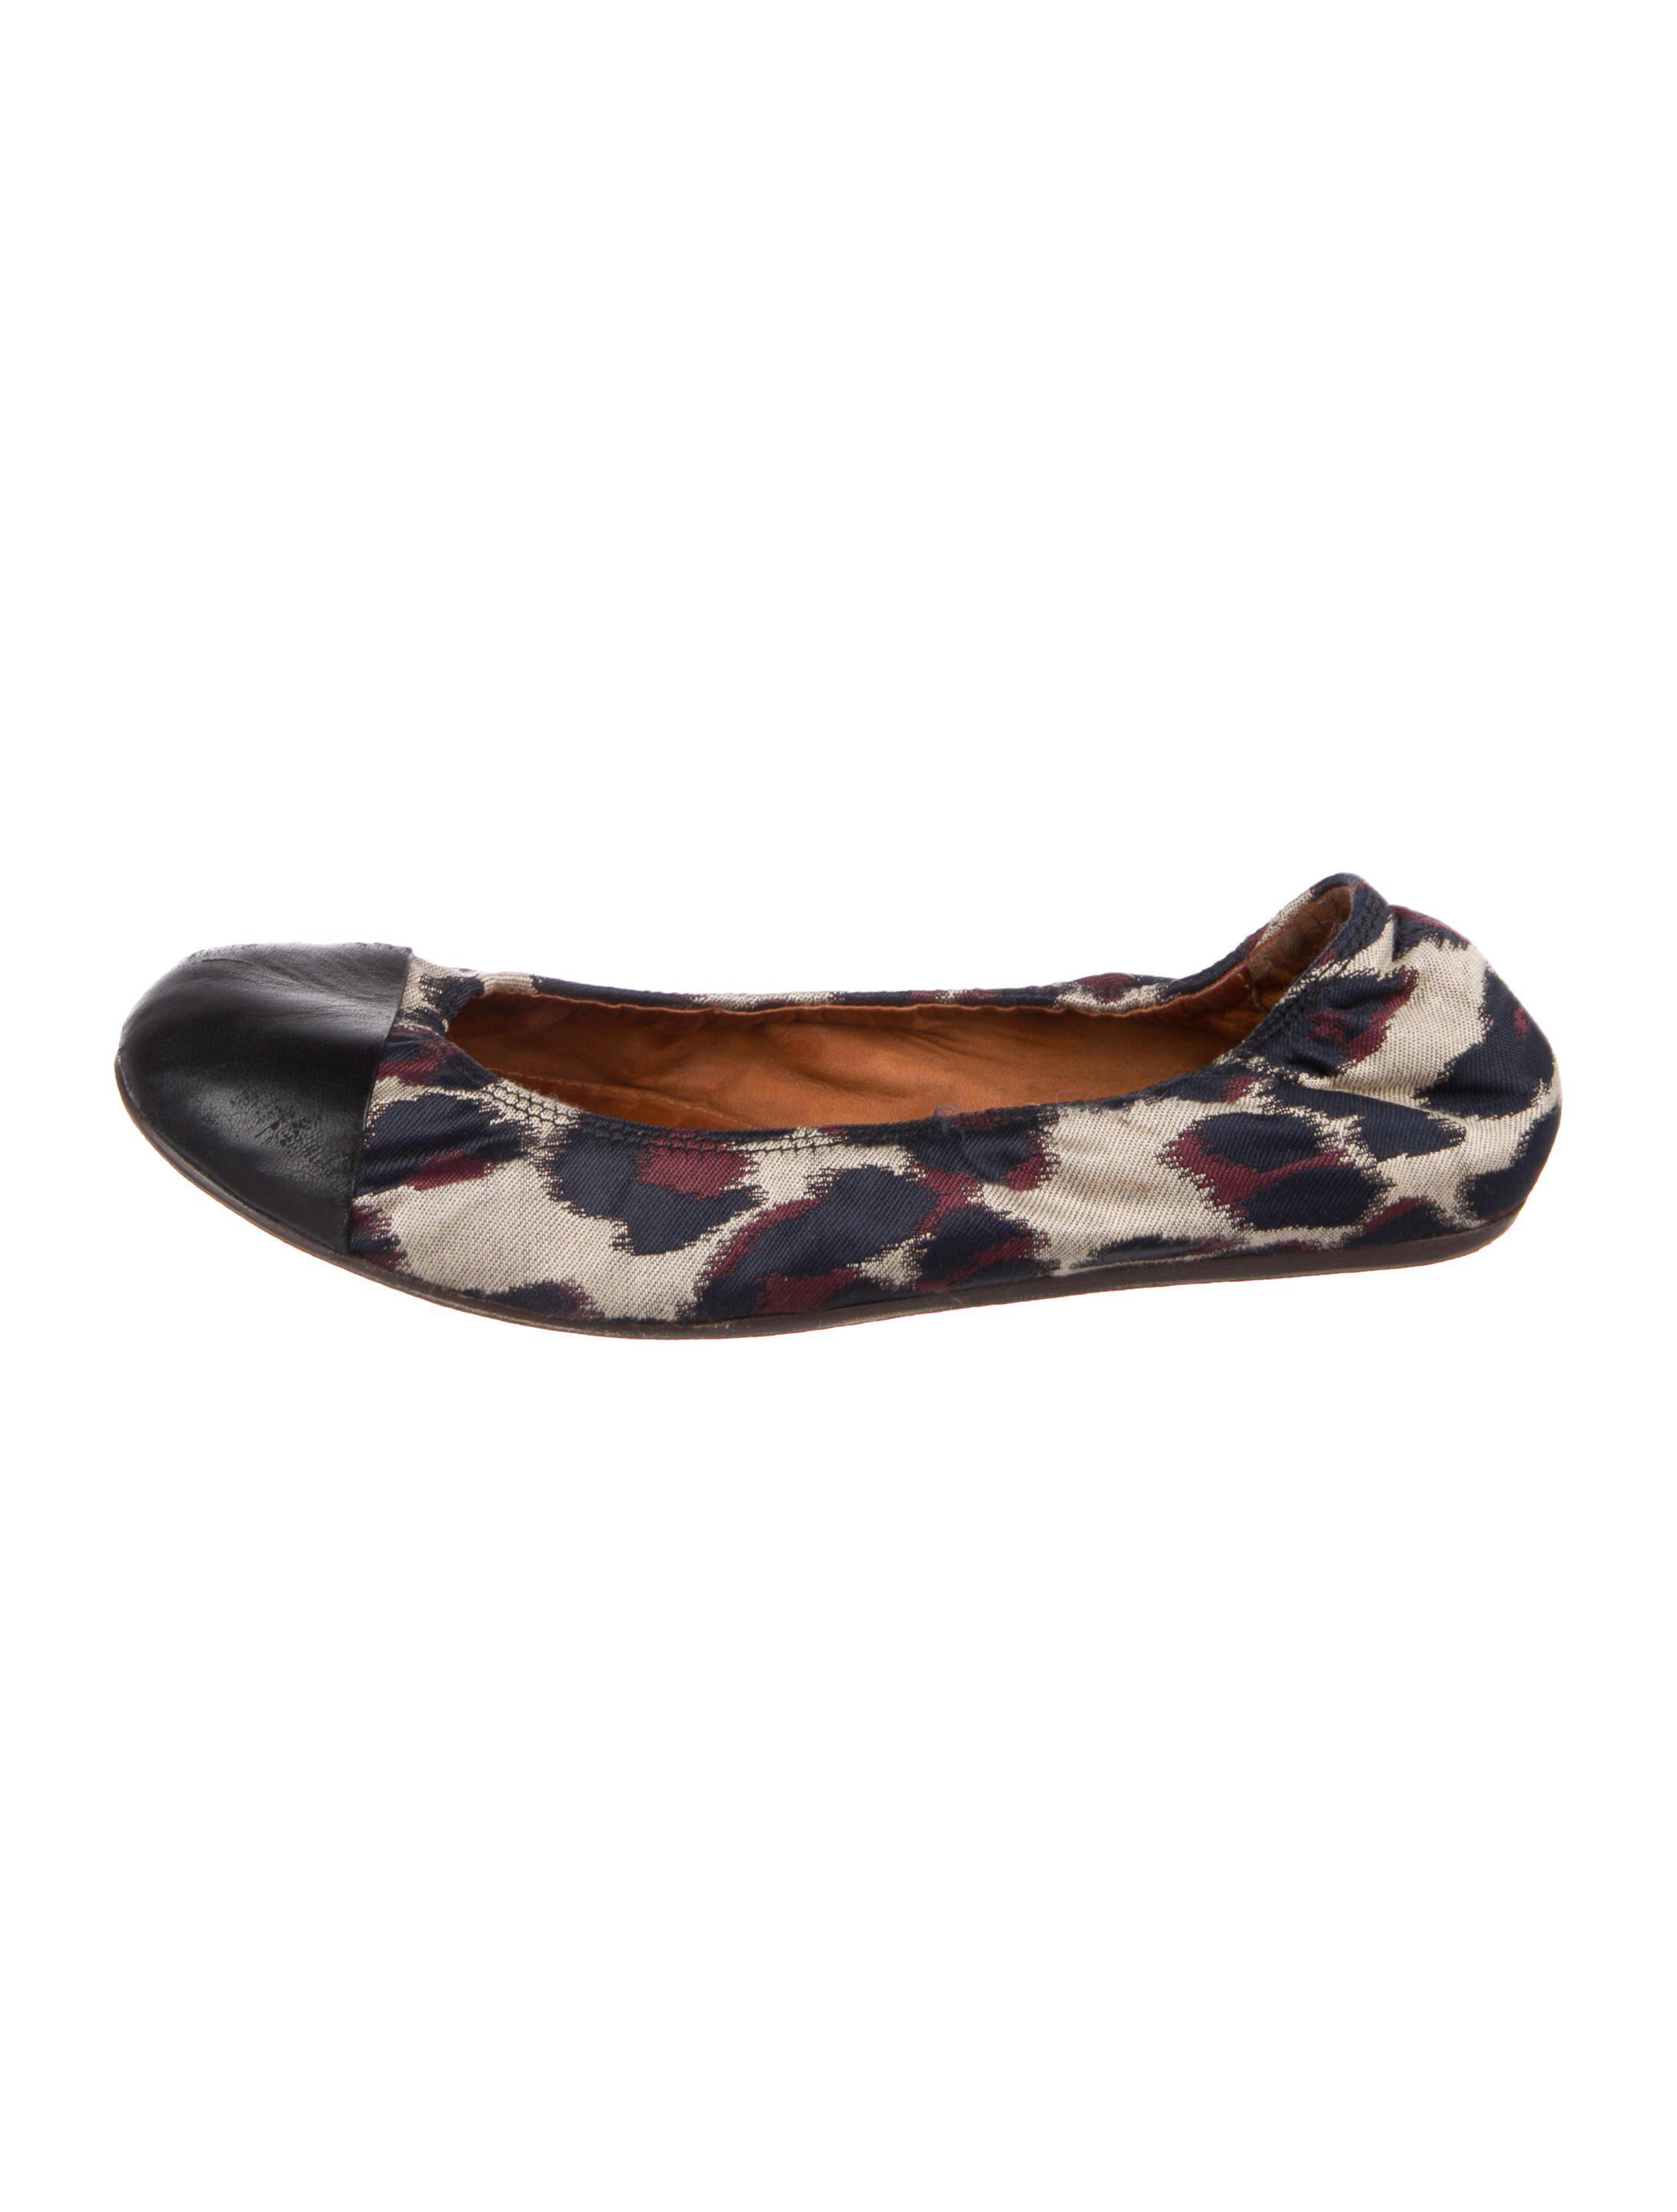 Lanvin Canvas Pointed-Toe Flats discount Manchester GiAzy6